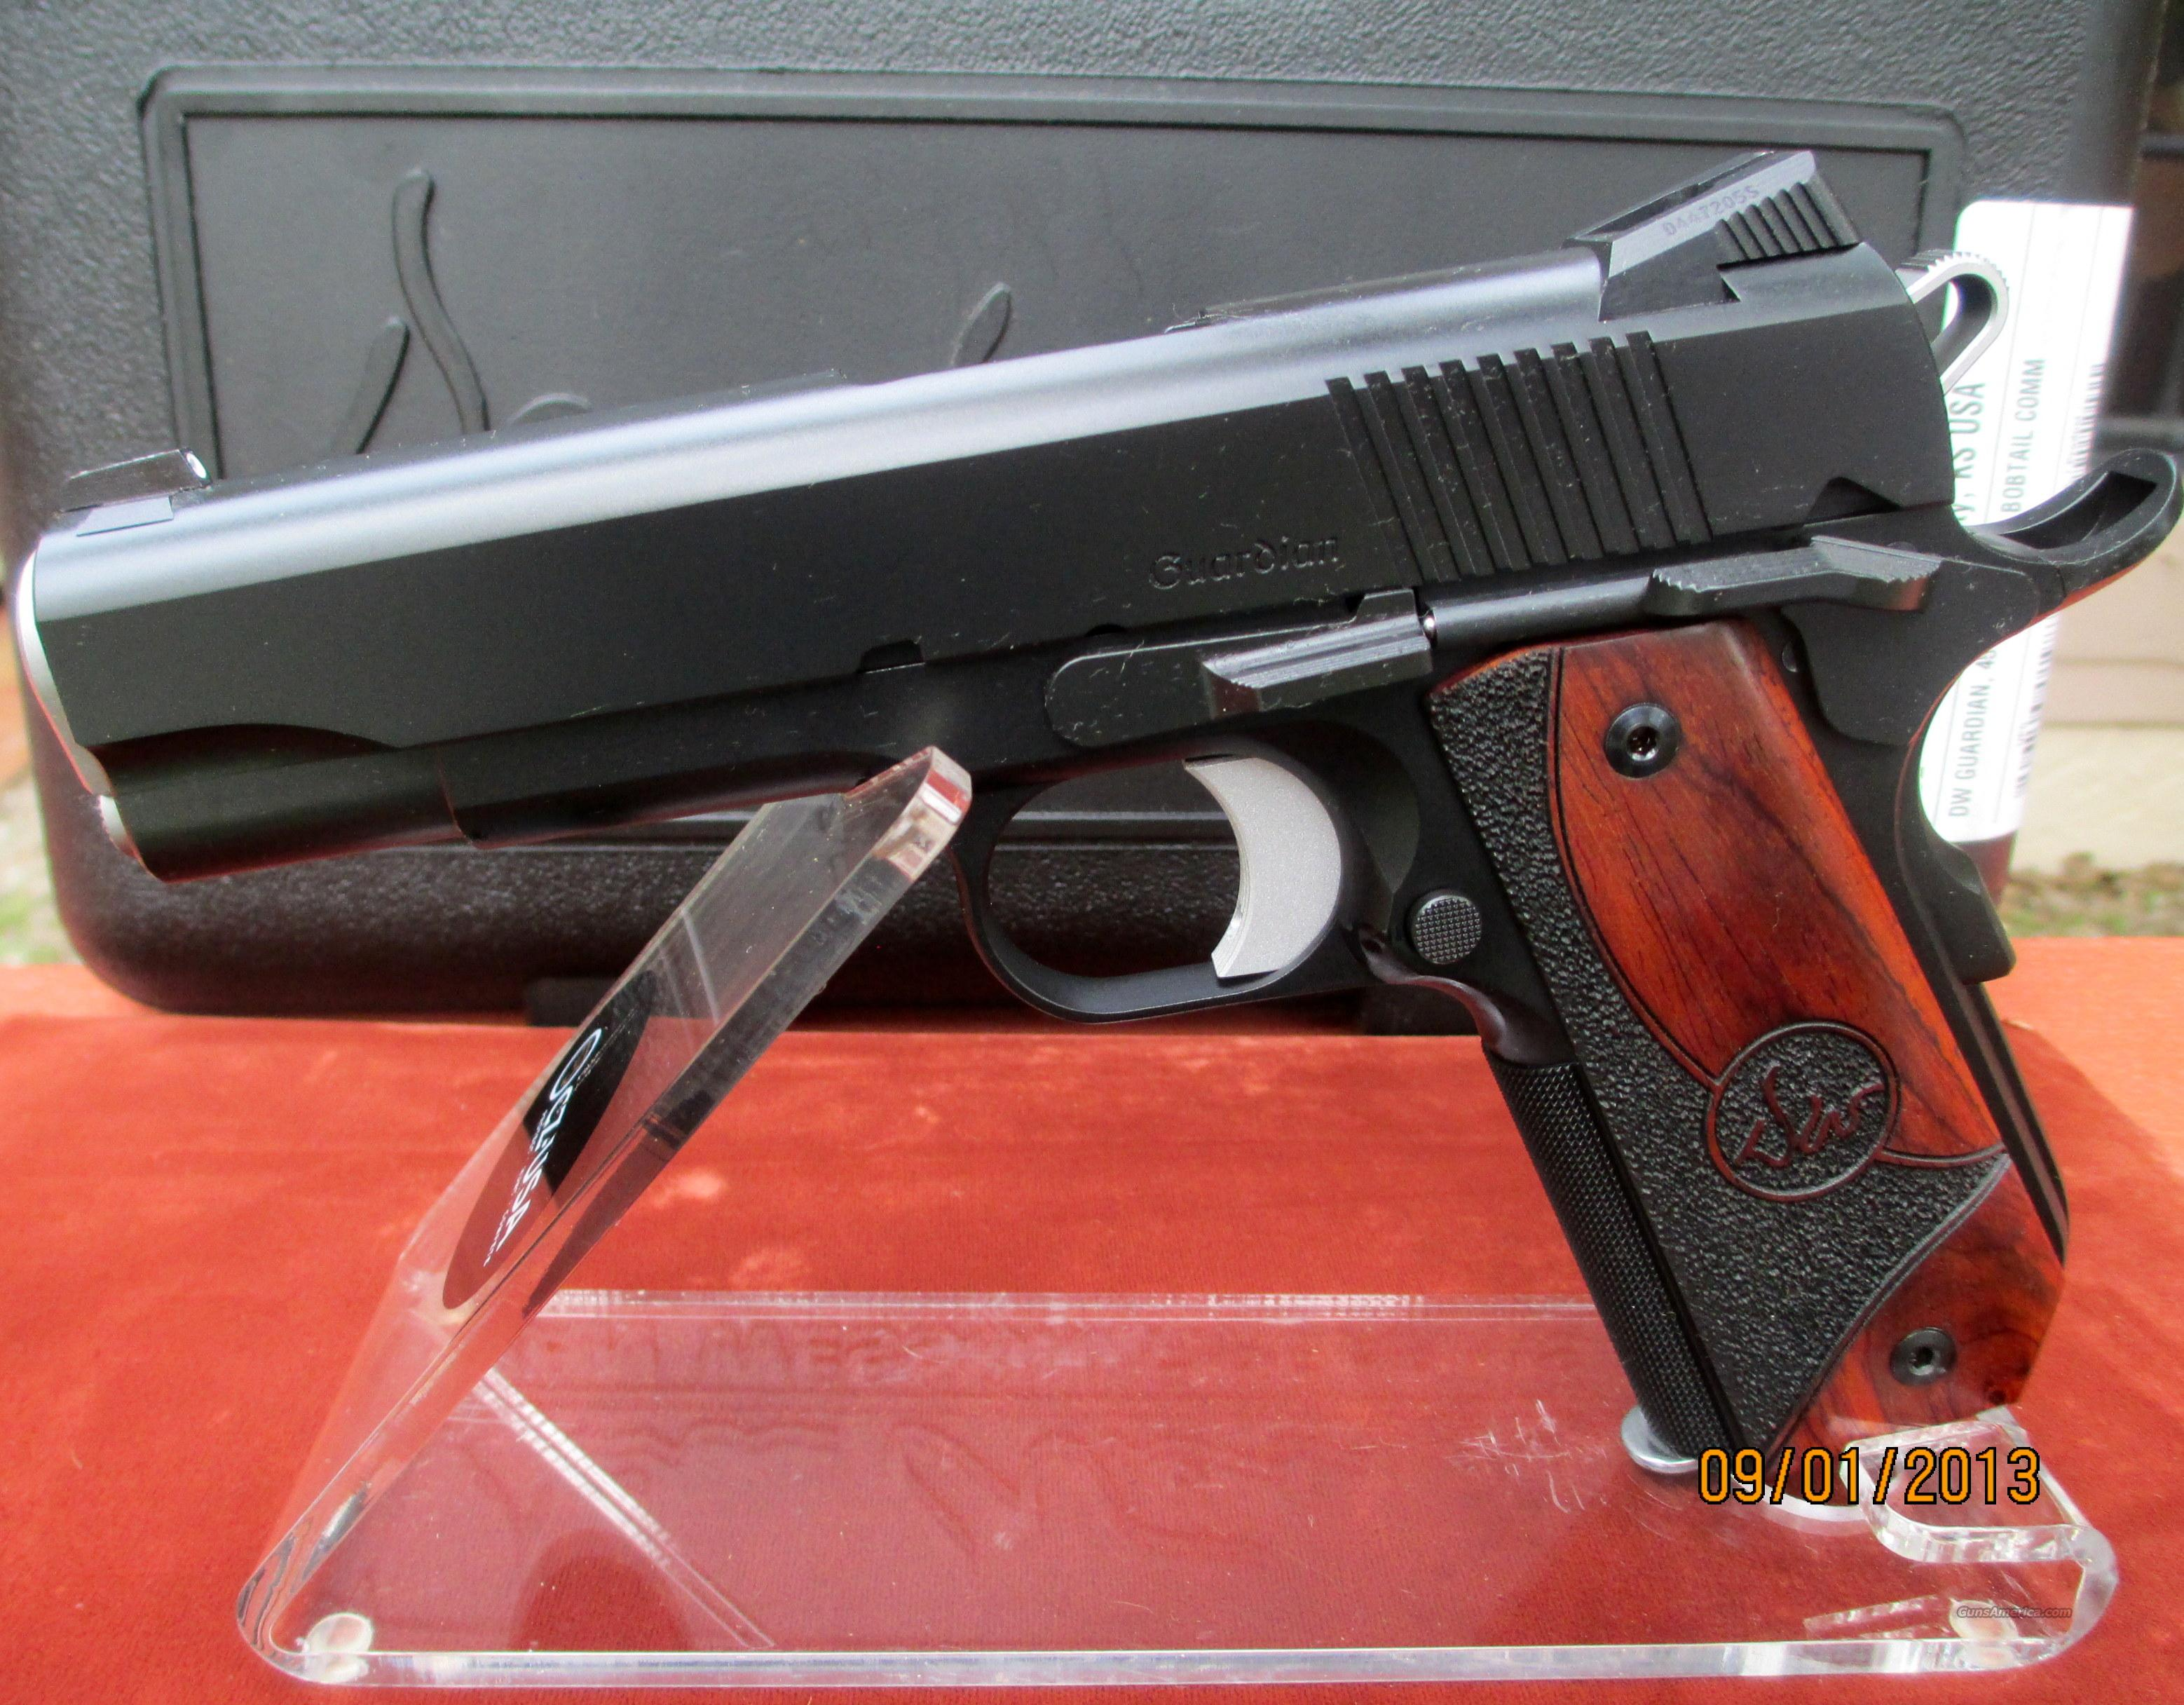 DAN WESSON GUARDIAN 45ACP REDUCED PRICE WITH FREE RANGEBAG  Guns > Pistols > Dan Wesson Pistols/Revolvers > 1911 Style